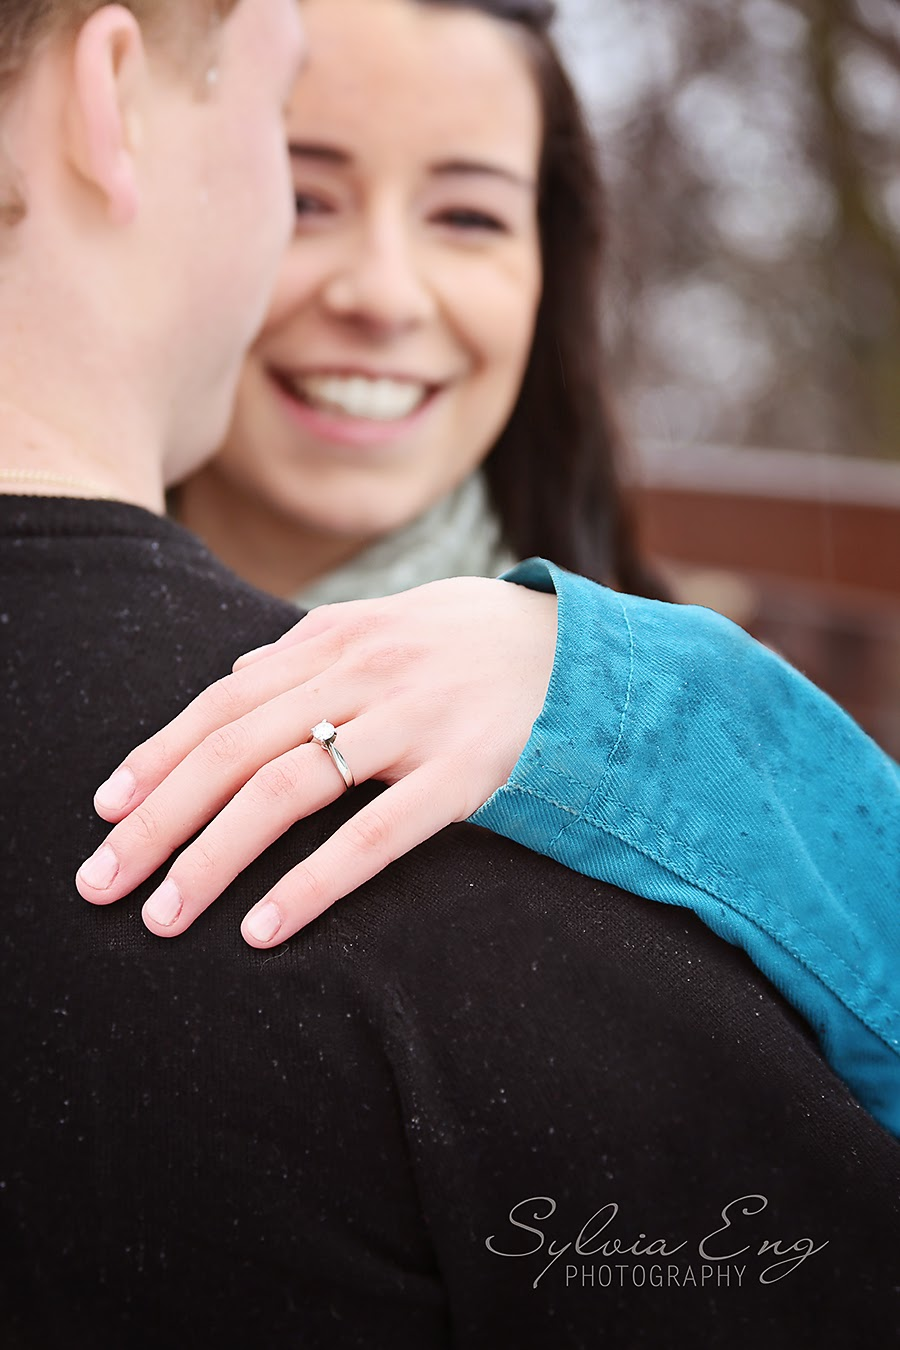 Surprise Proposal and Engagement Photos - Downtown Brampton